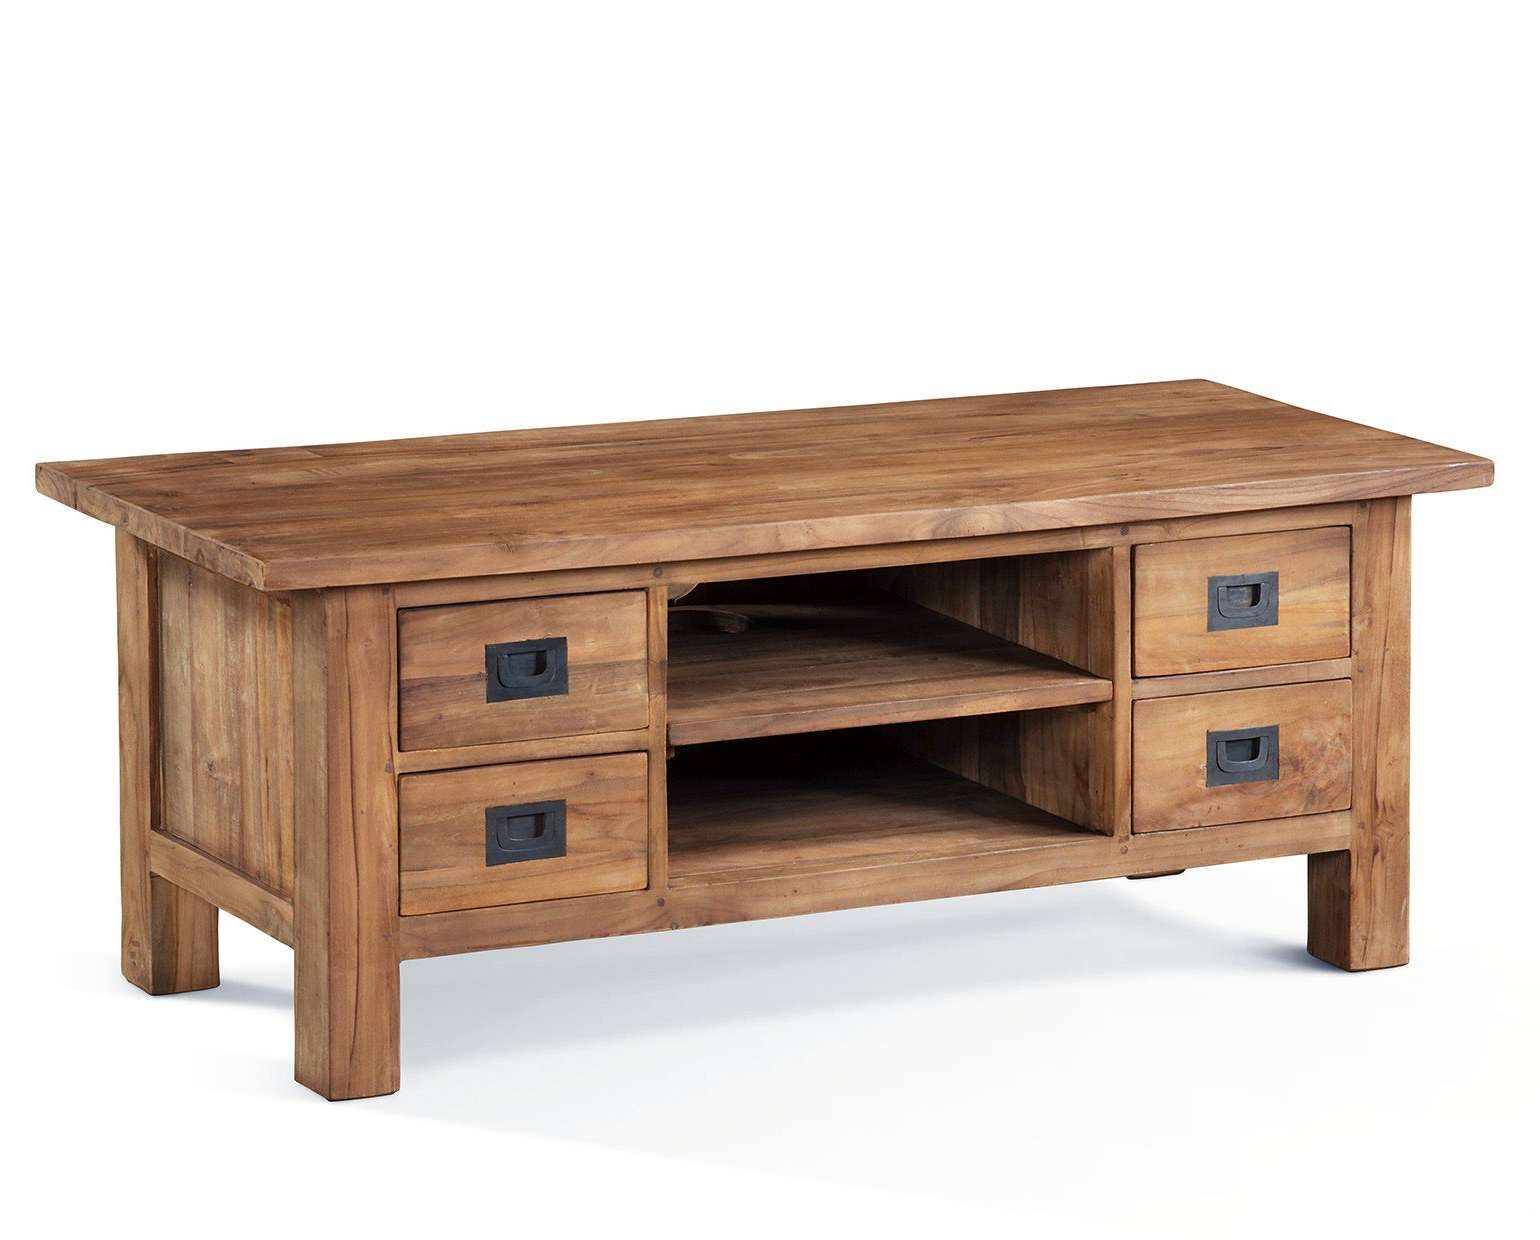 Lifestyle Long Low Tv Cabinet – Raft Furniture, London Pertaining To Long Tv Cabinets Furniture (View 9 of 20)